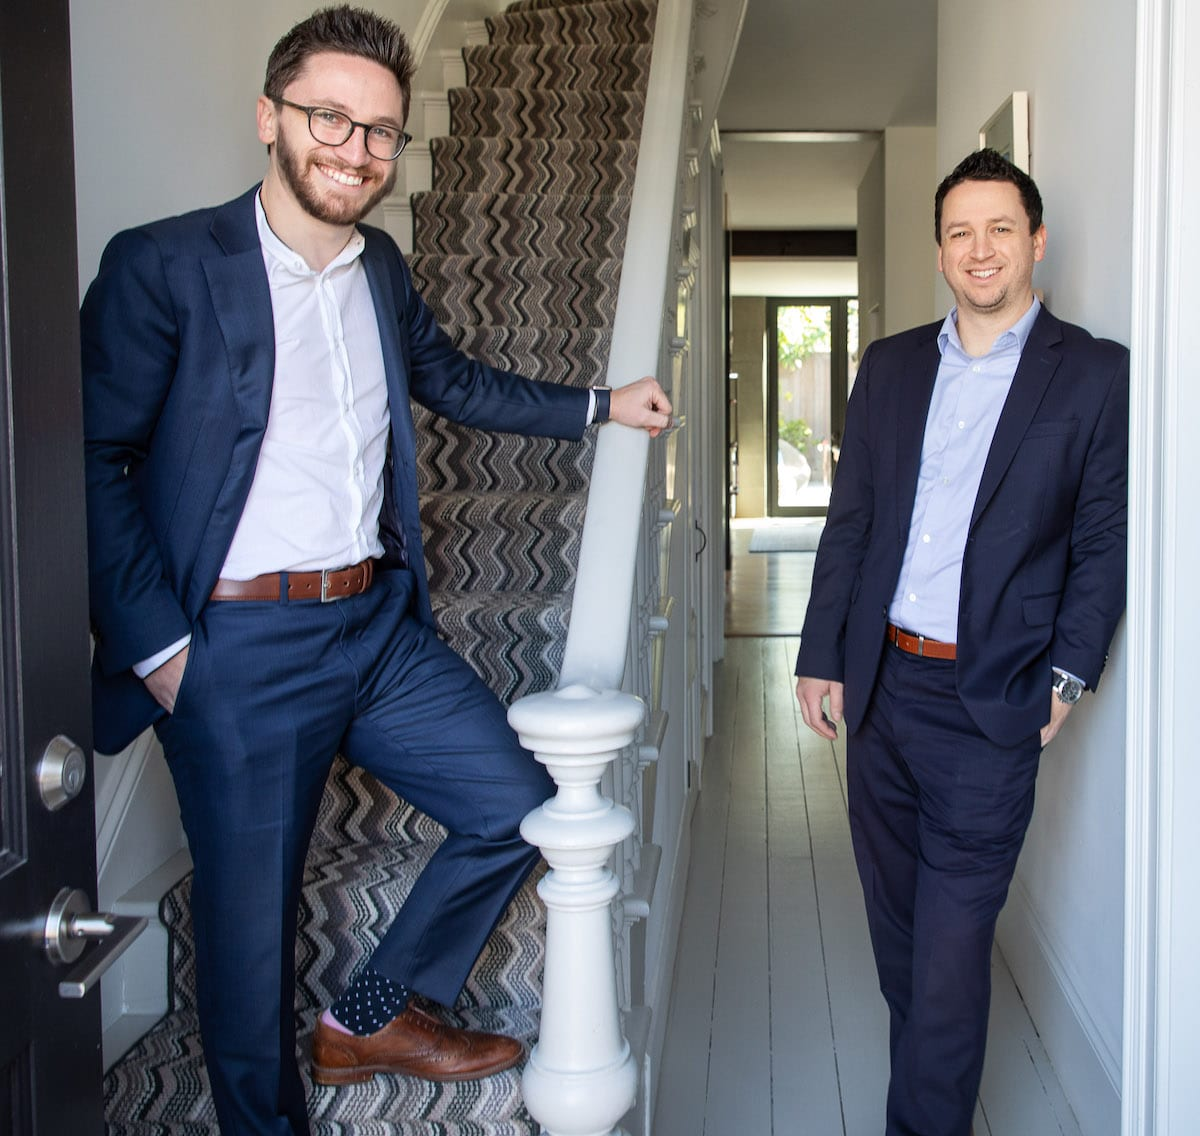 Working Together: Siblings Talk Business on National Siblings Day | Michael (left) and Aaron Bellings | Working with siblings